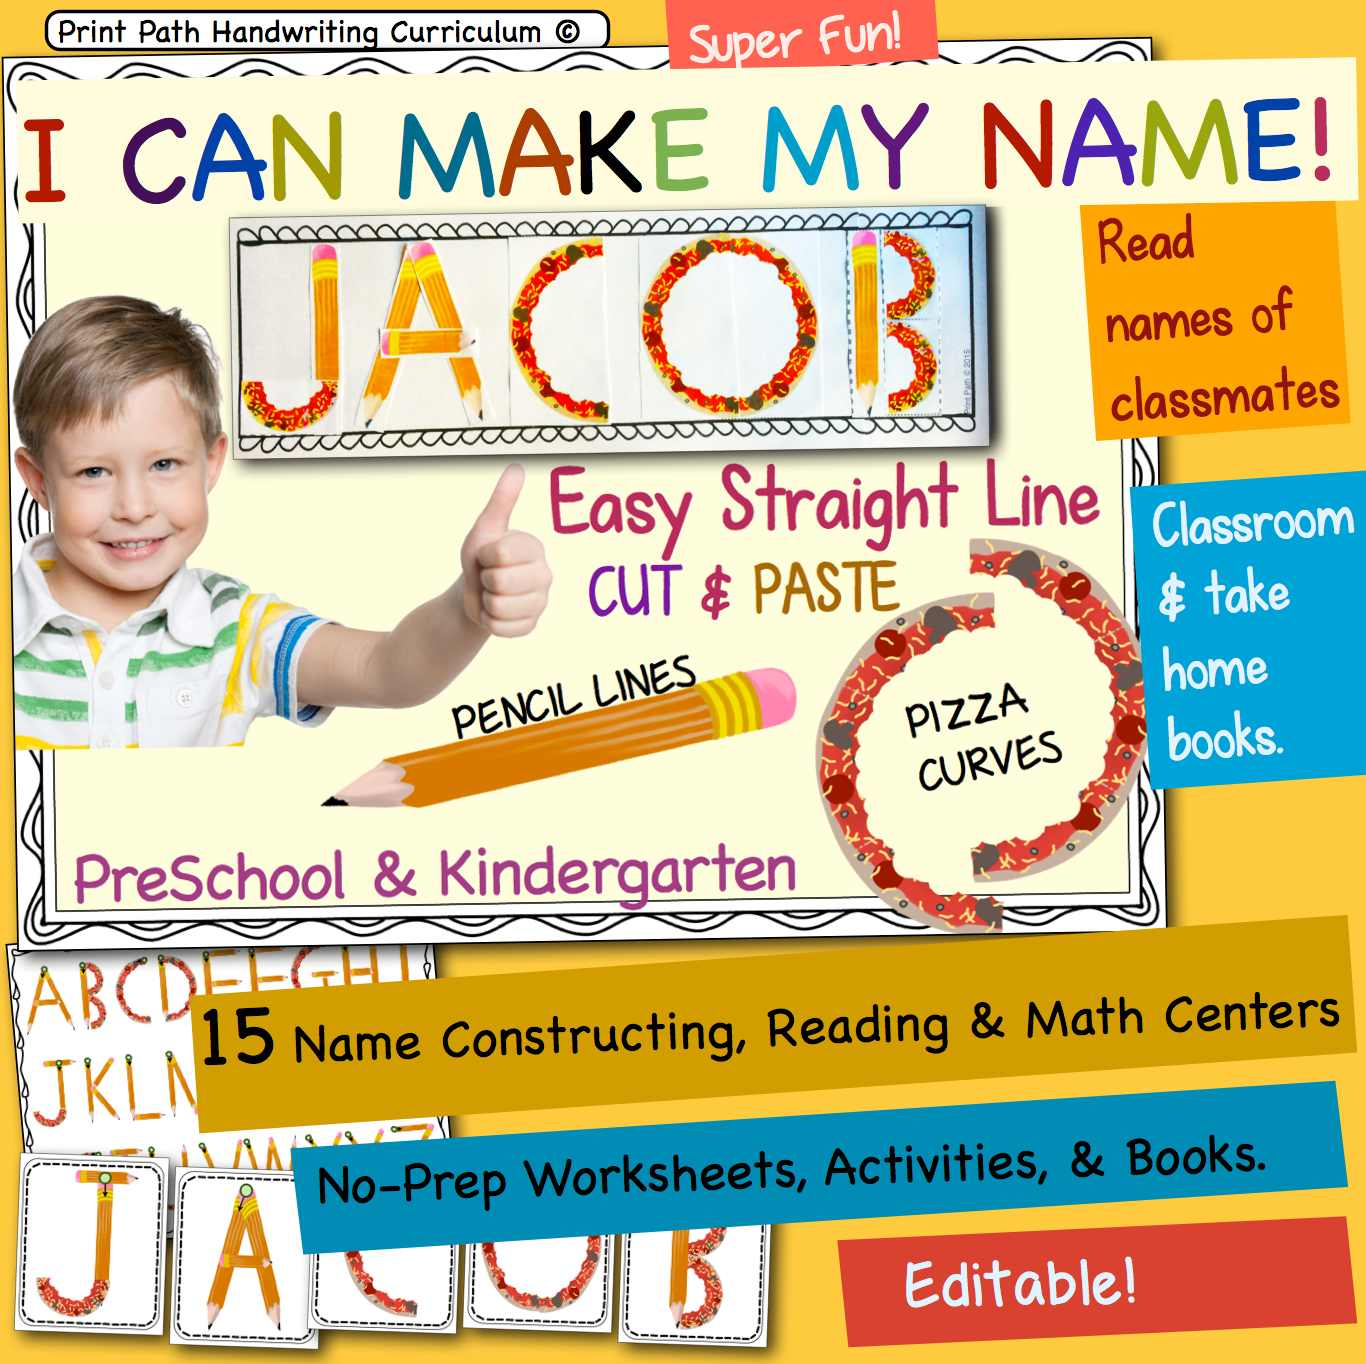 Capitals First! by Print Path: Teaching Young Children to Write Their Names [ 1364 x 1366 Pixel ]